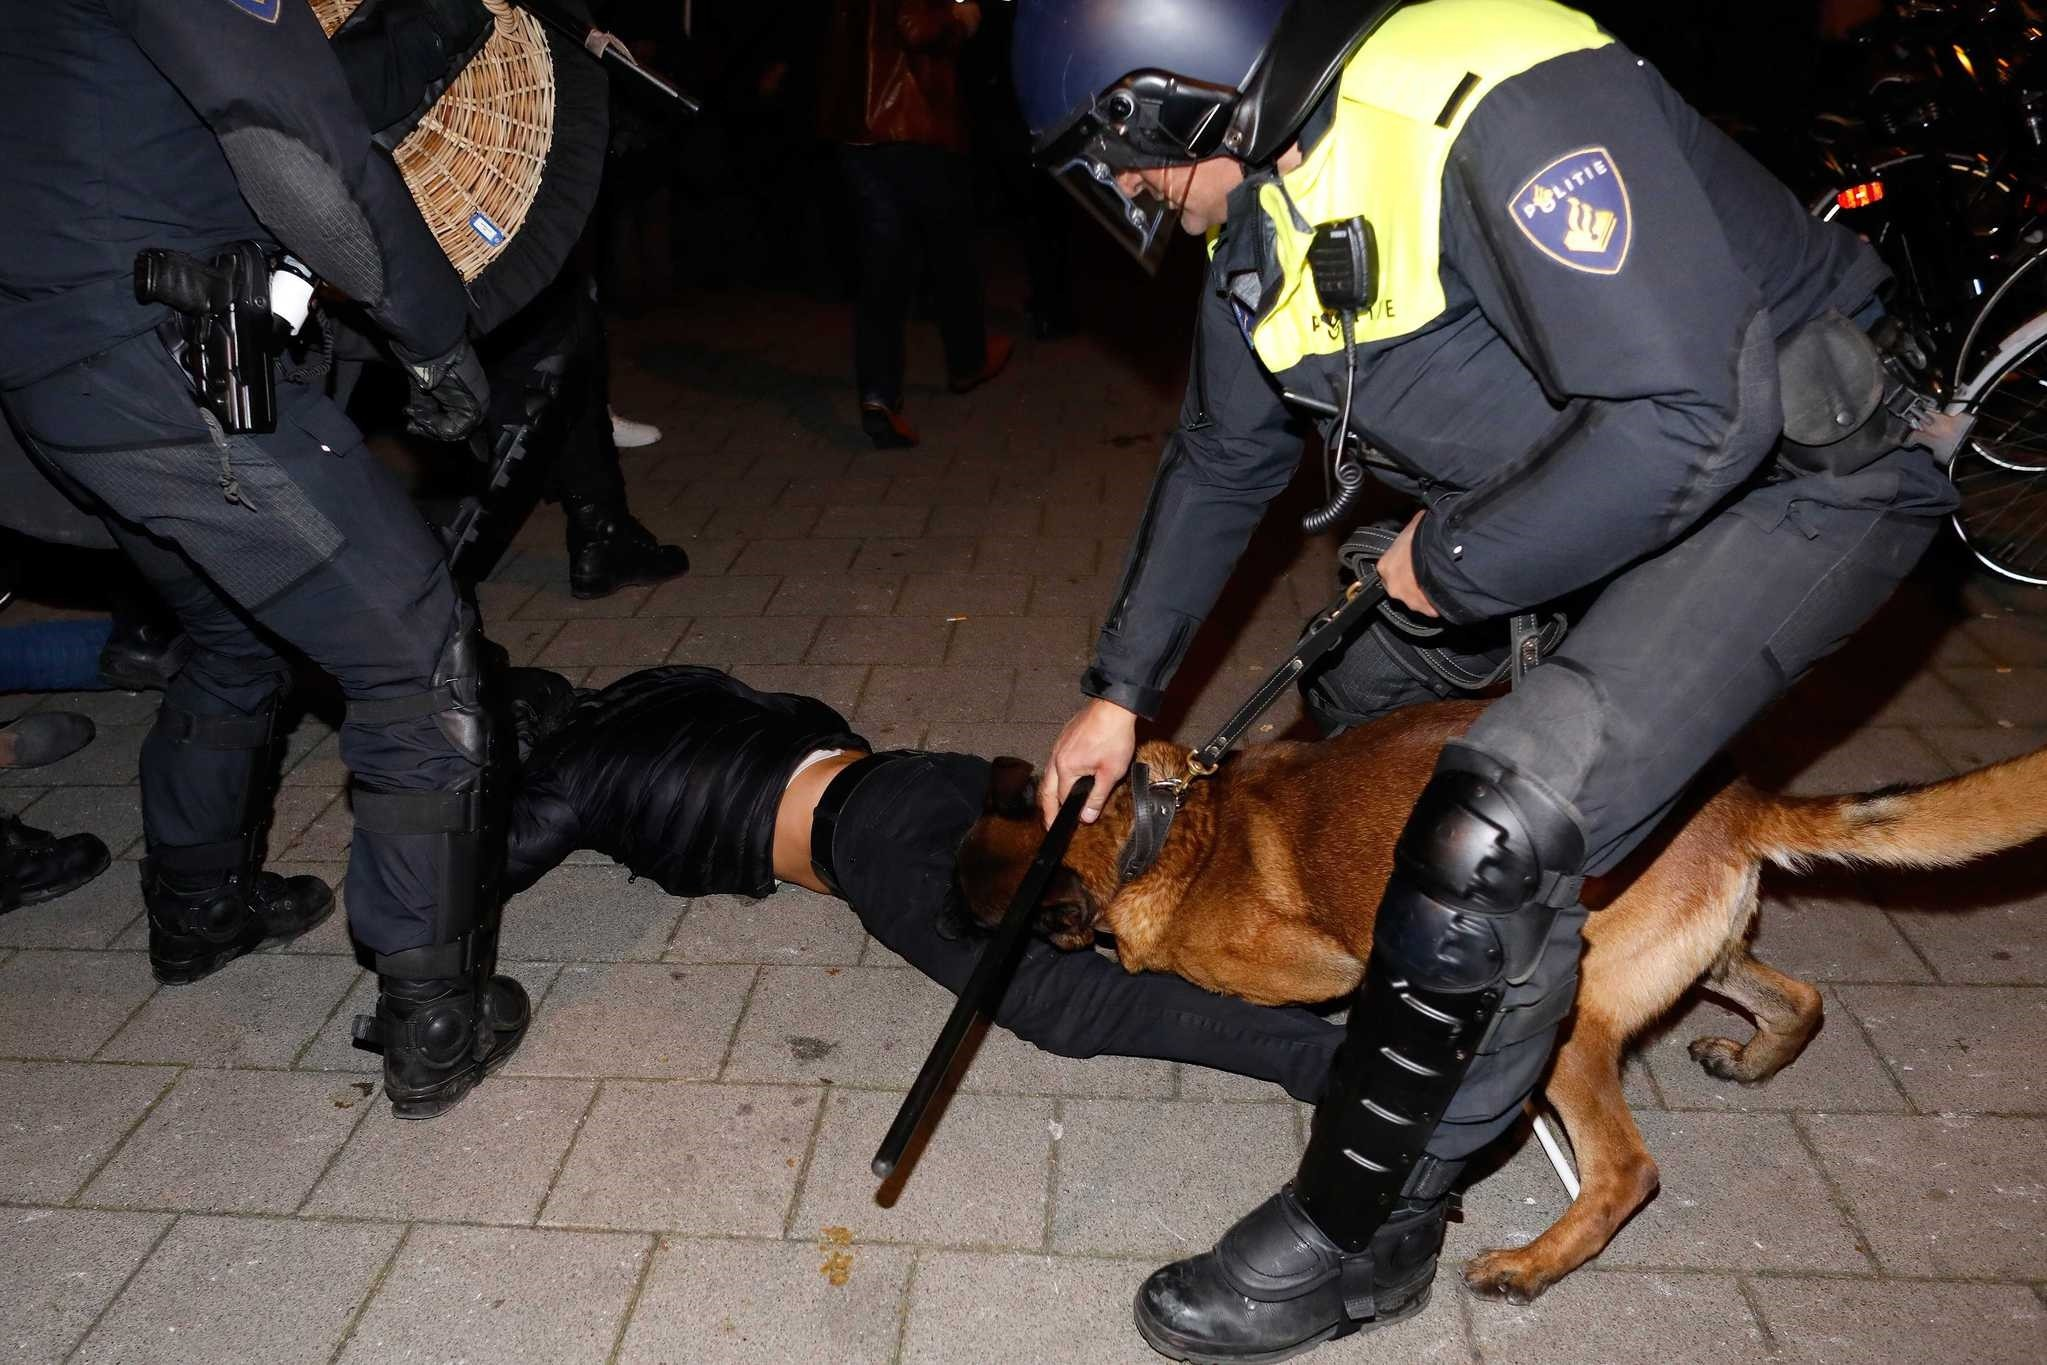 Dutch police forcefully dispersed peaceful demonstrators including the usage of K9 police dogs, water cannons and mounted police during which several protesters and reporters were injured, early Sunday.